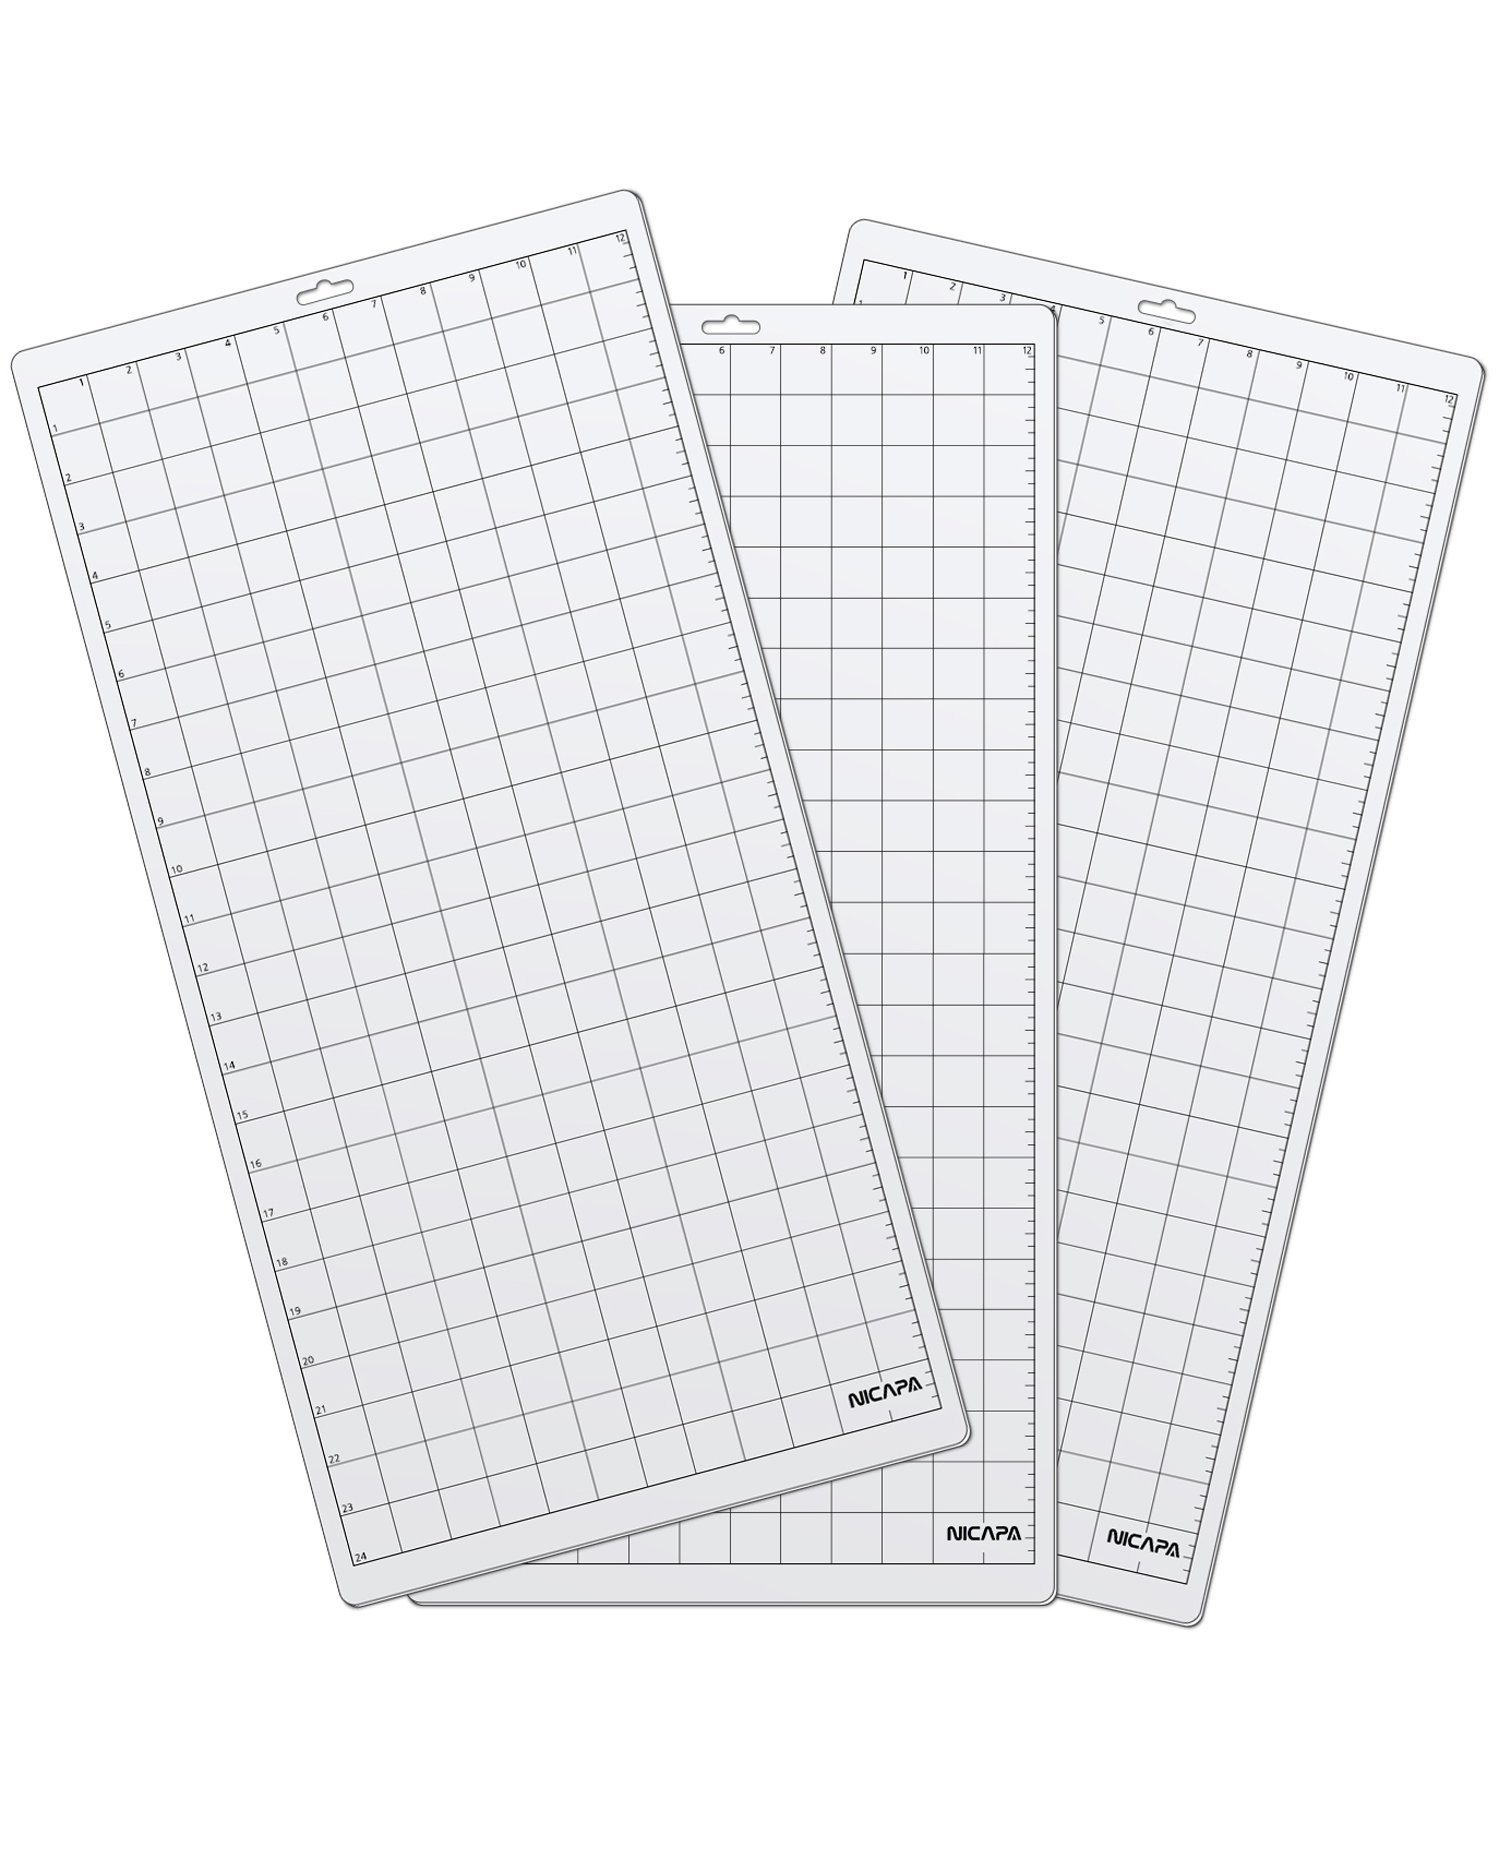 For  Cutting Mat, 12'' H by 24'' L Nicapa replacement cutting mat (3pack)